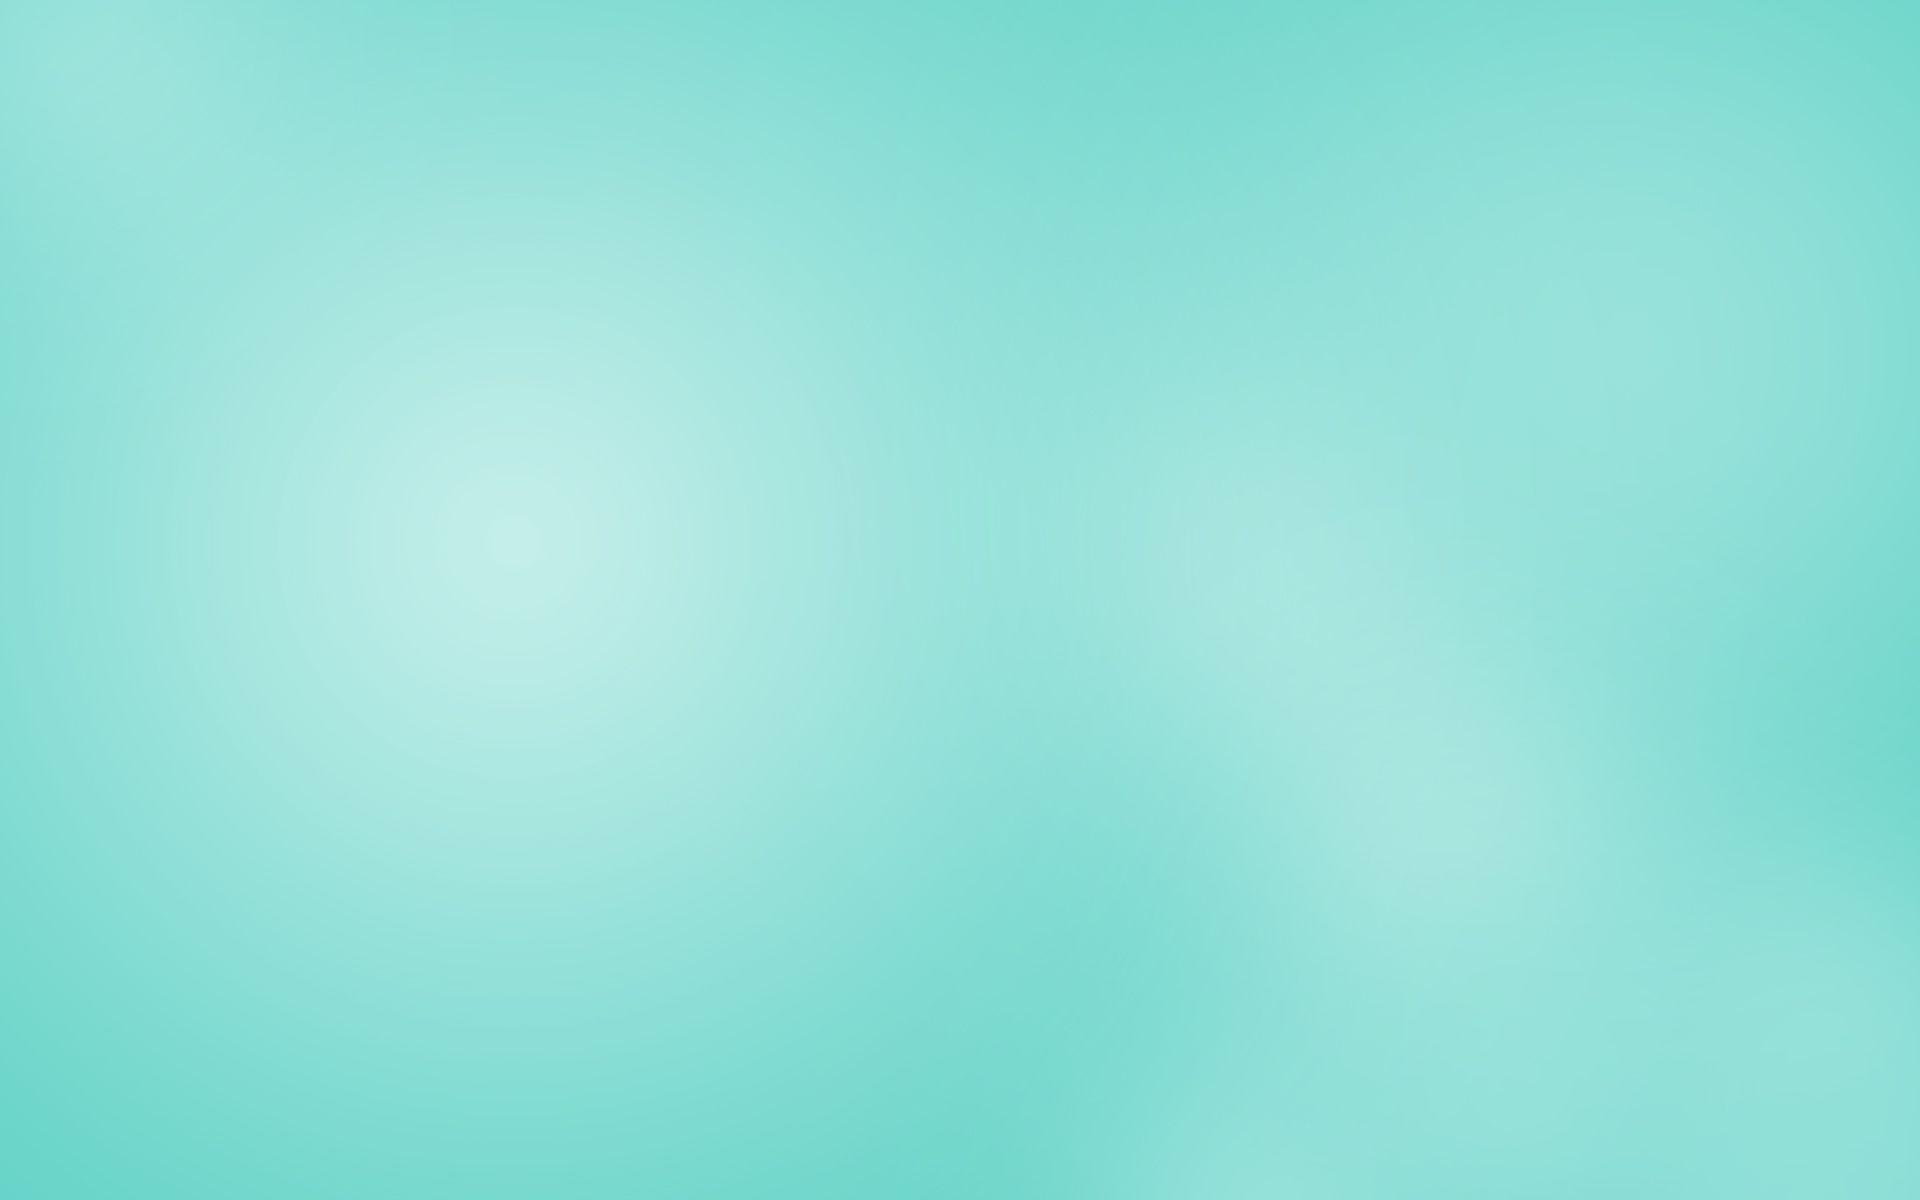 Mint Green Wallpapers Wallpaper Cave HD Wallpapers Download Free Images Wallpaper [1000image.com]